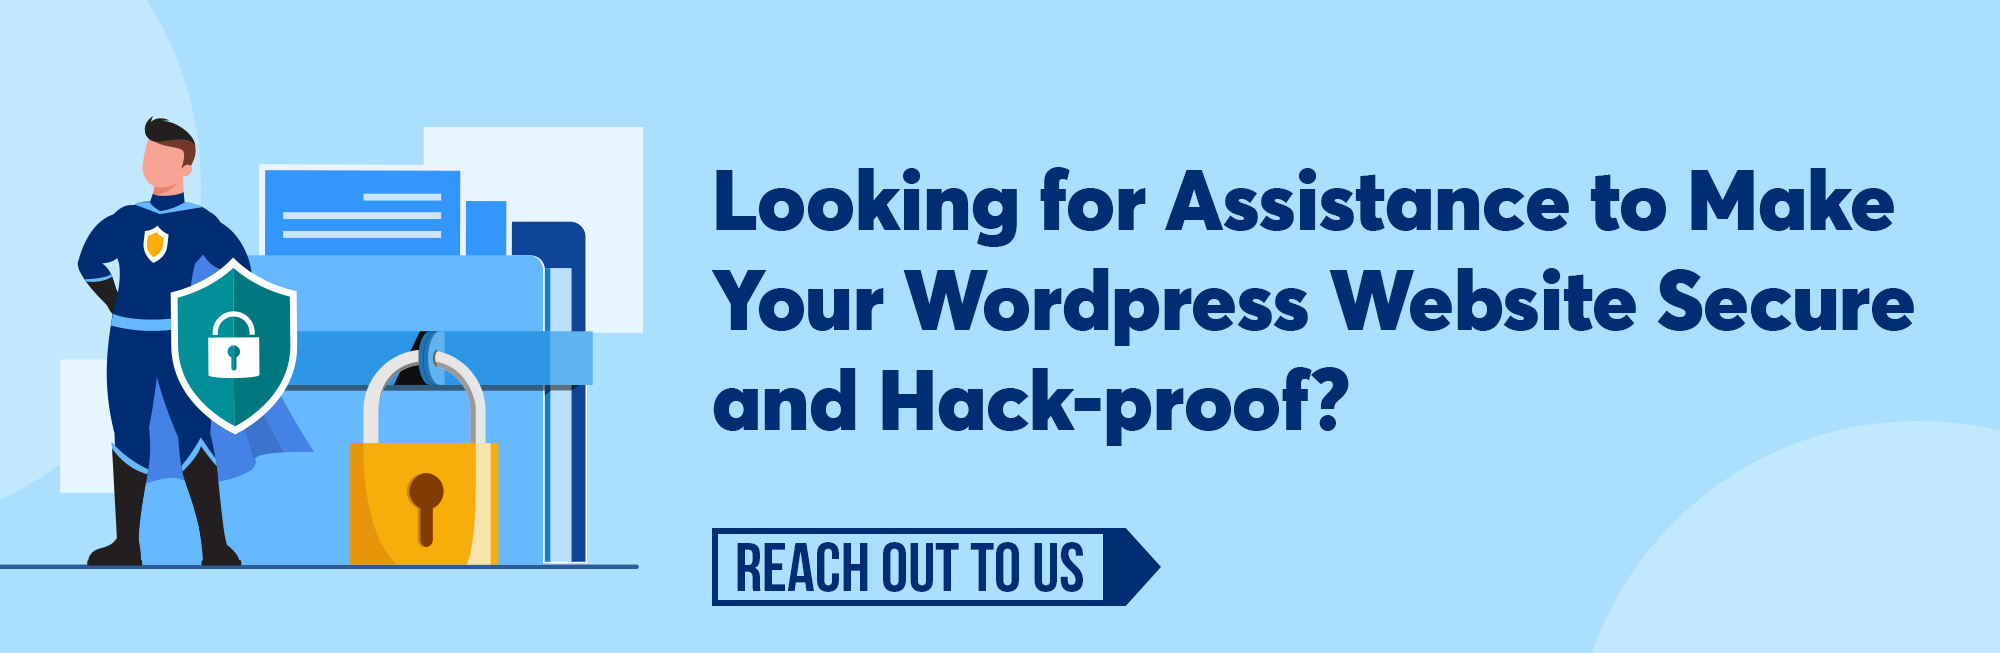 WordPress Security How To Secure And Protect Your Website CTA